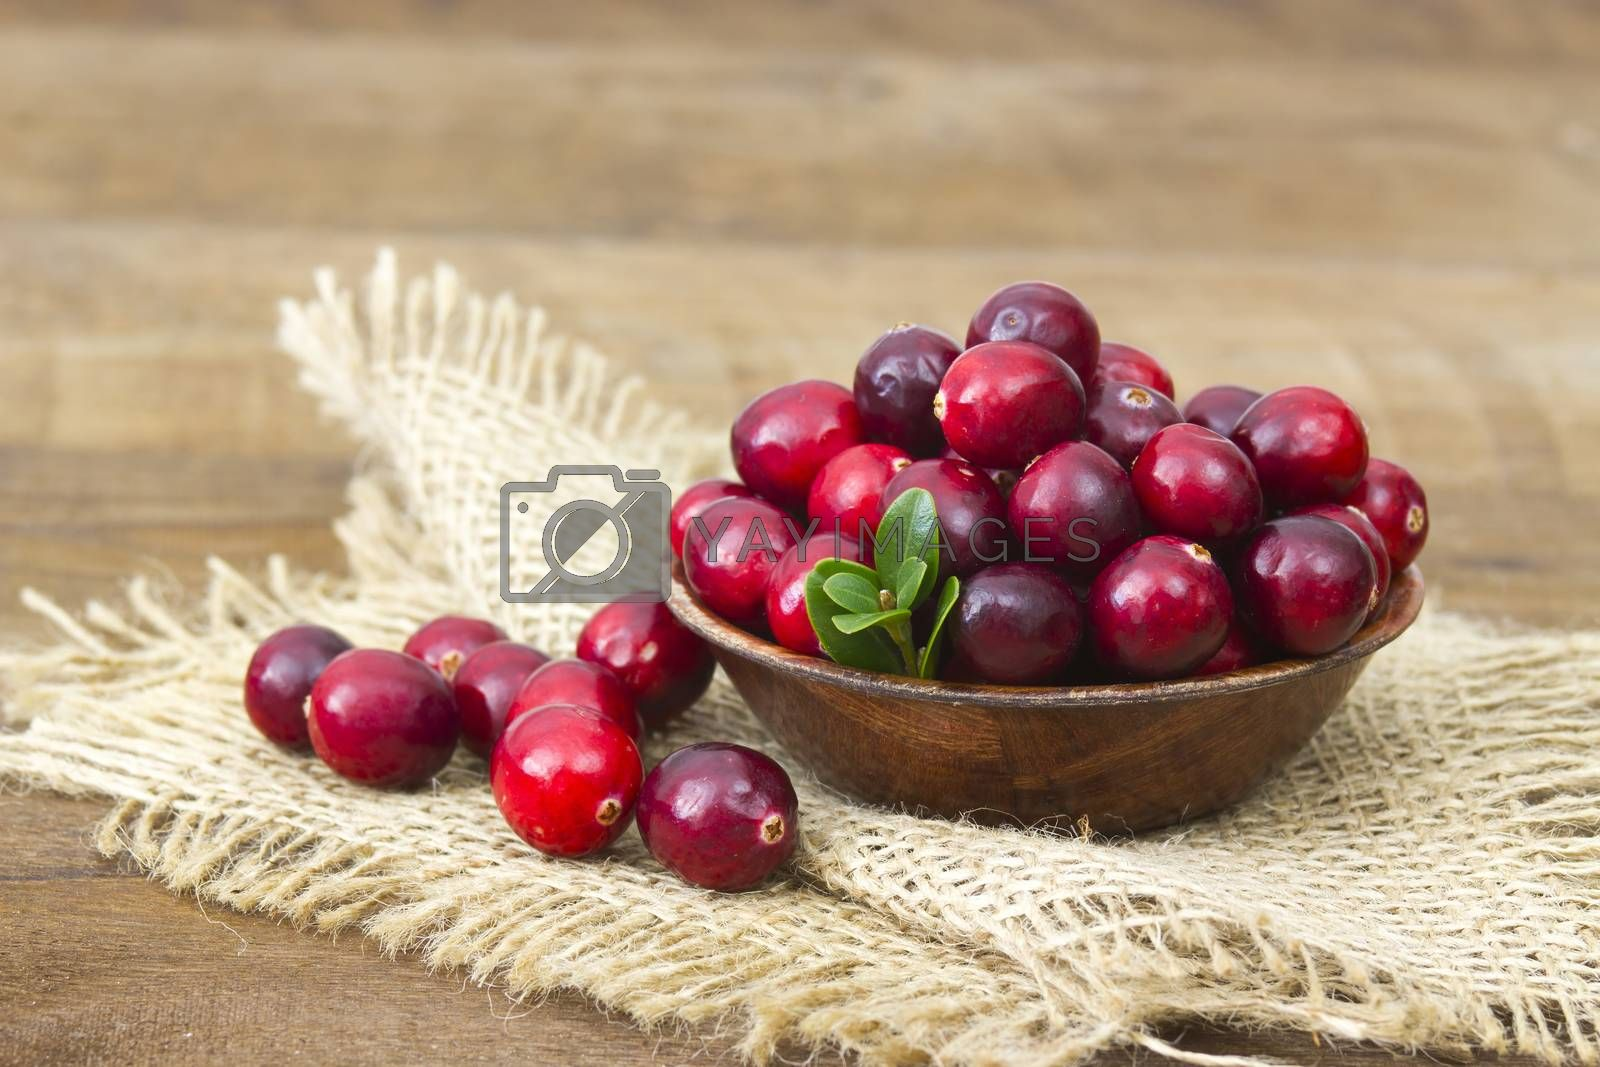 Cranberries in wooden bowl on wooden background.